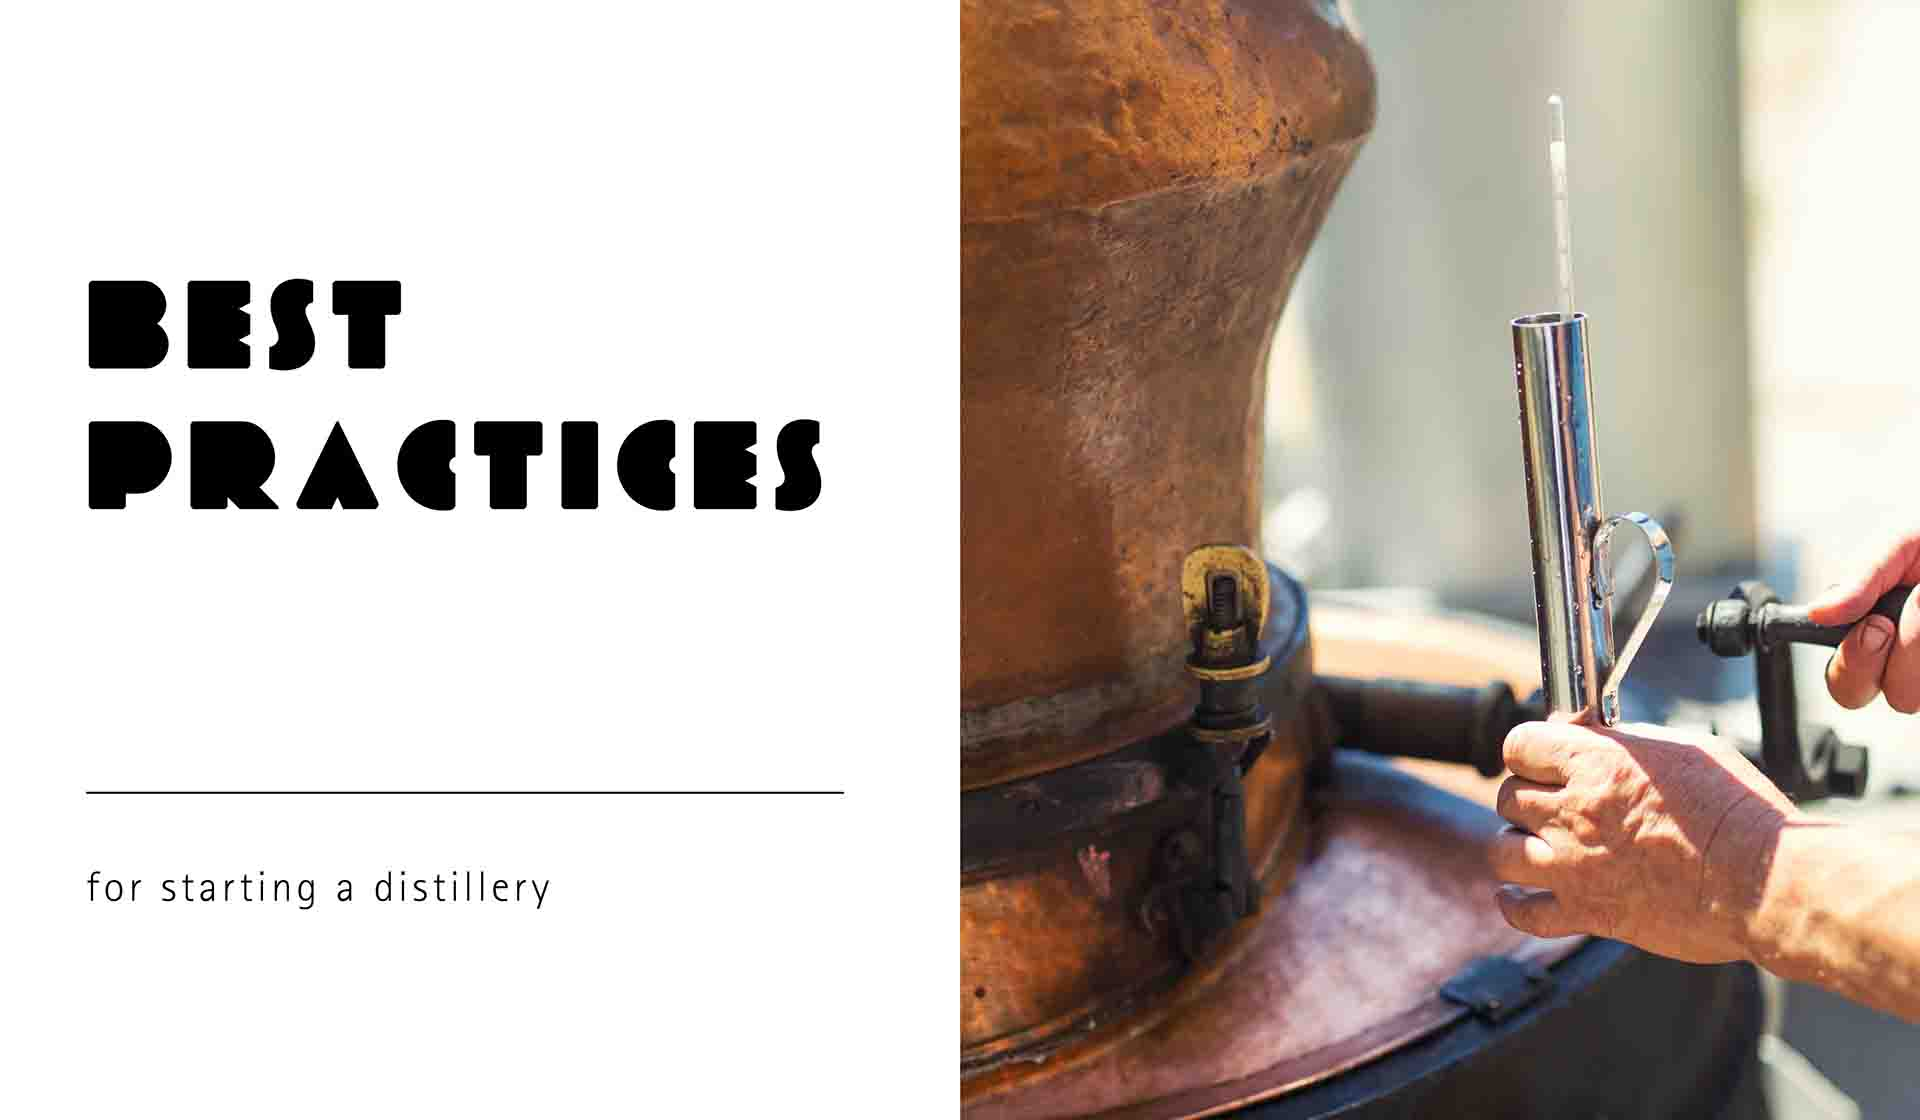 Best practices for starting a distillery bottlestore blog best practices for starting a distillery fbccfo Image collections